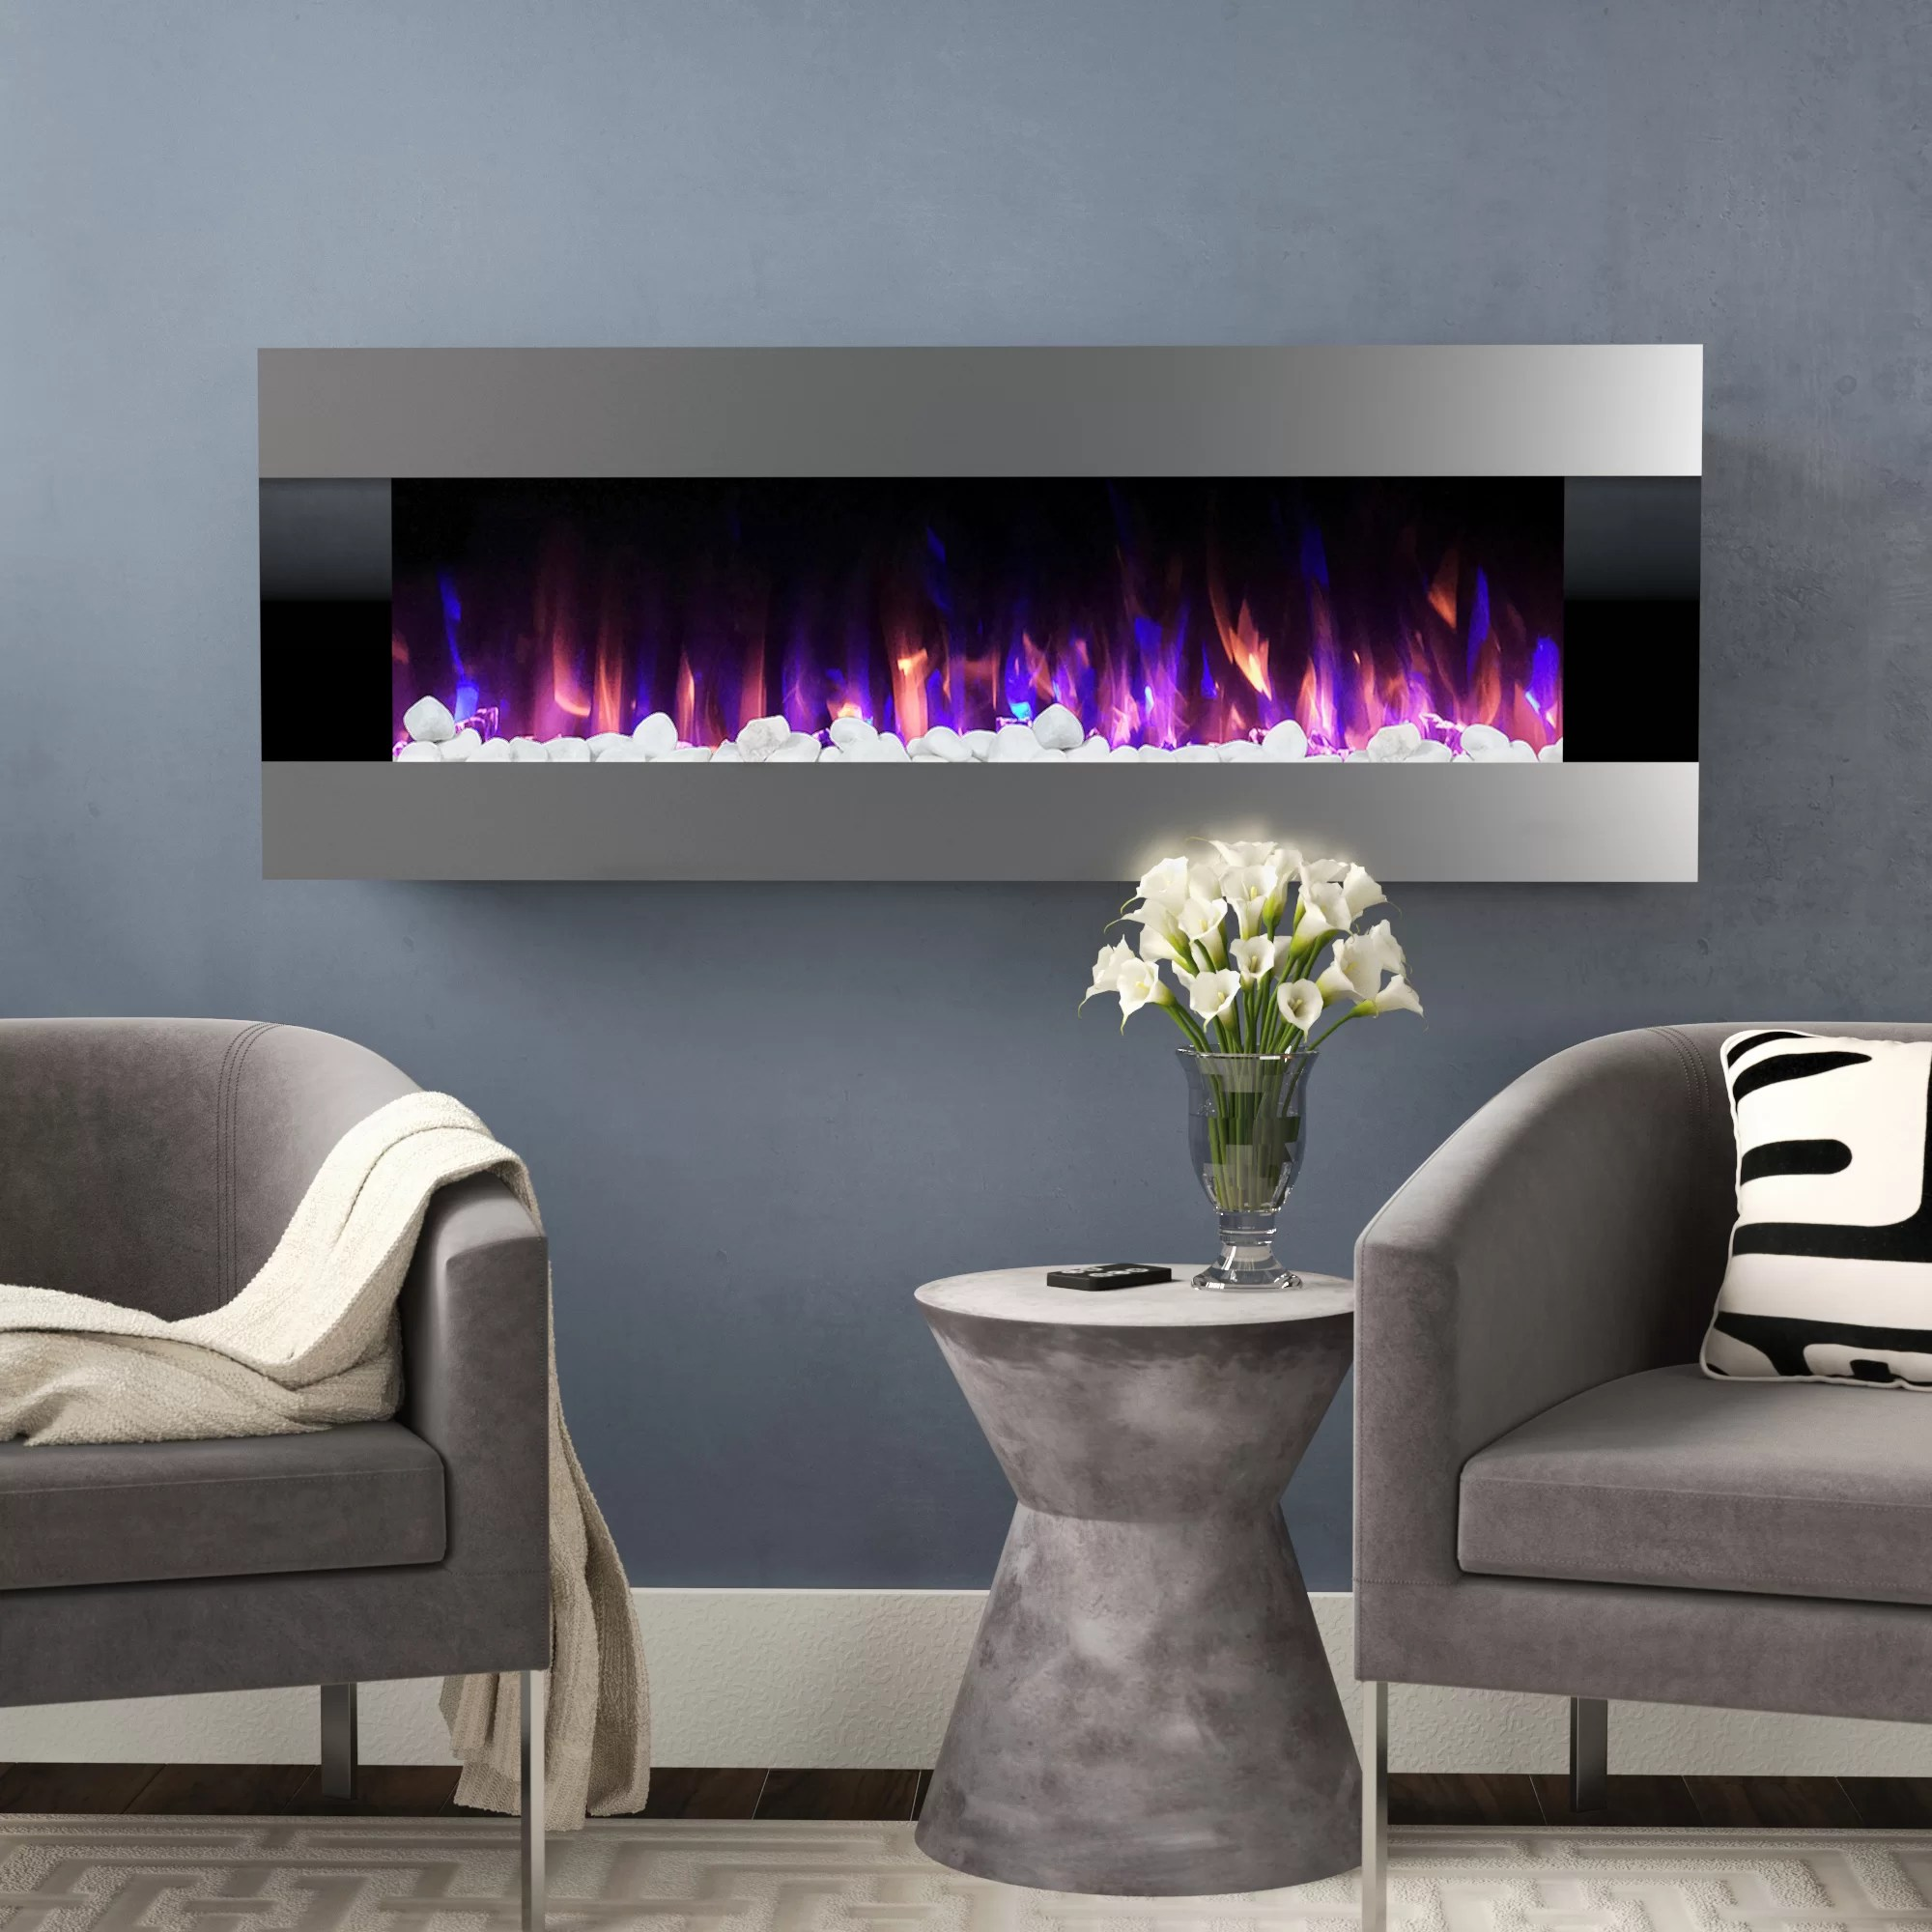 Wall Mount Fireplaces Quesinberry Recessed Wall Mounted Electric Fireplace